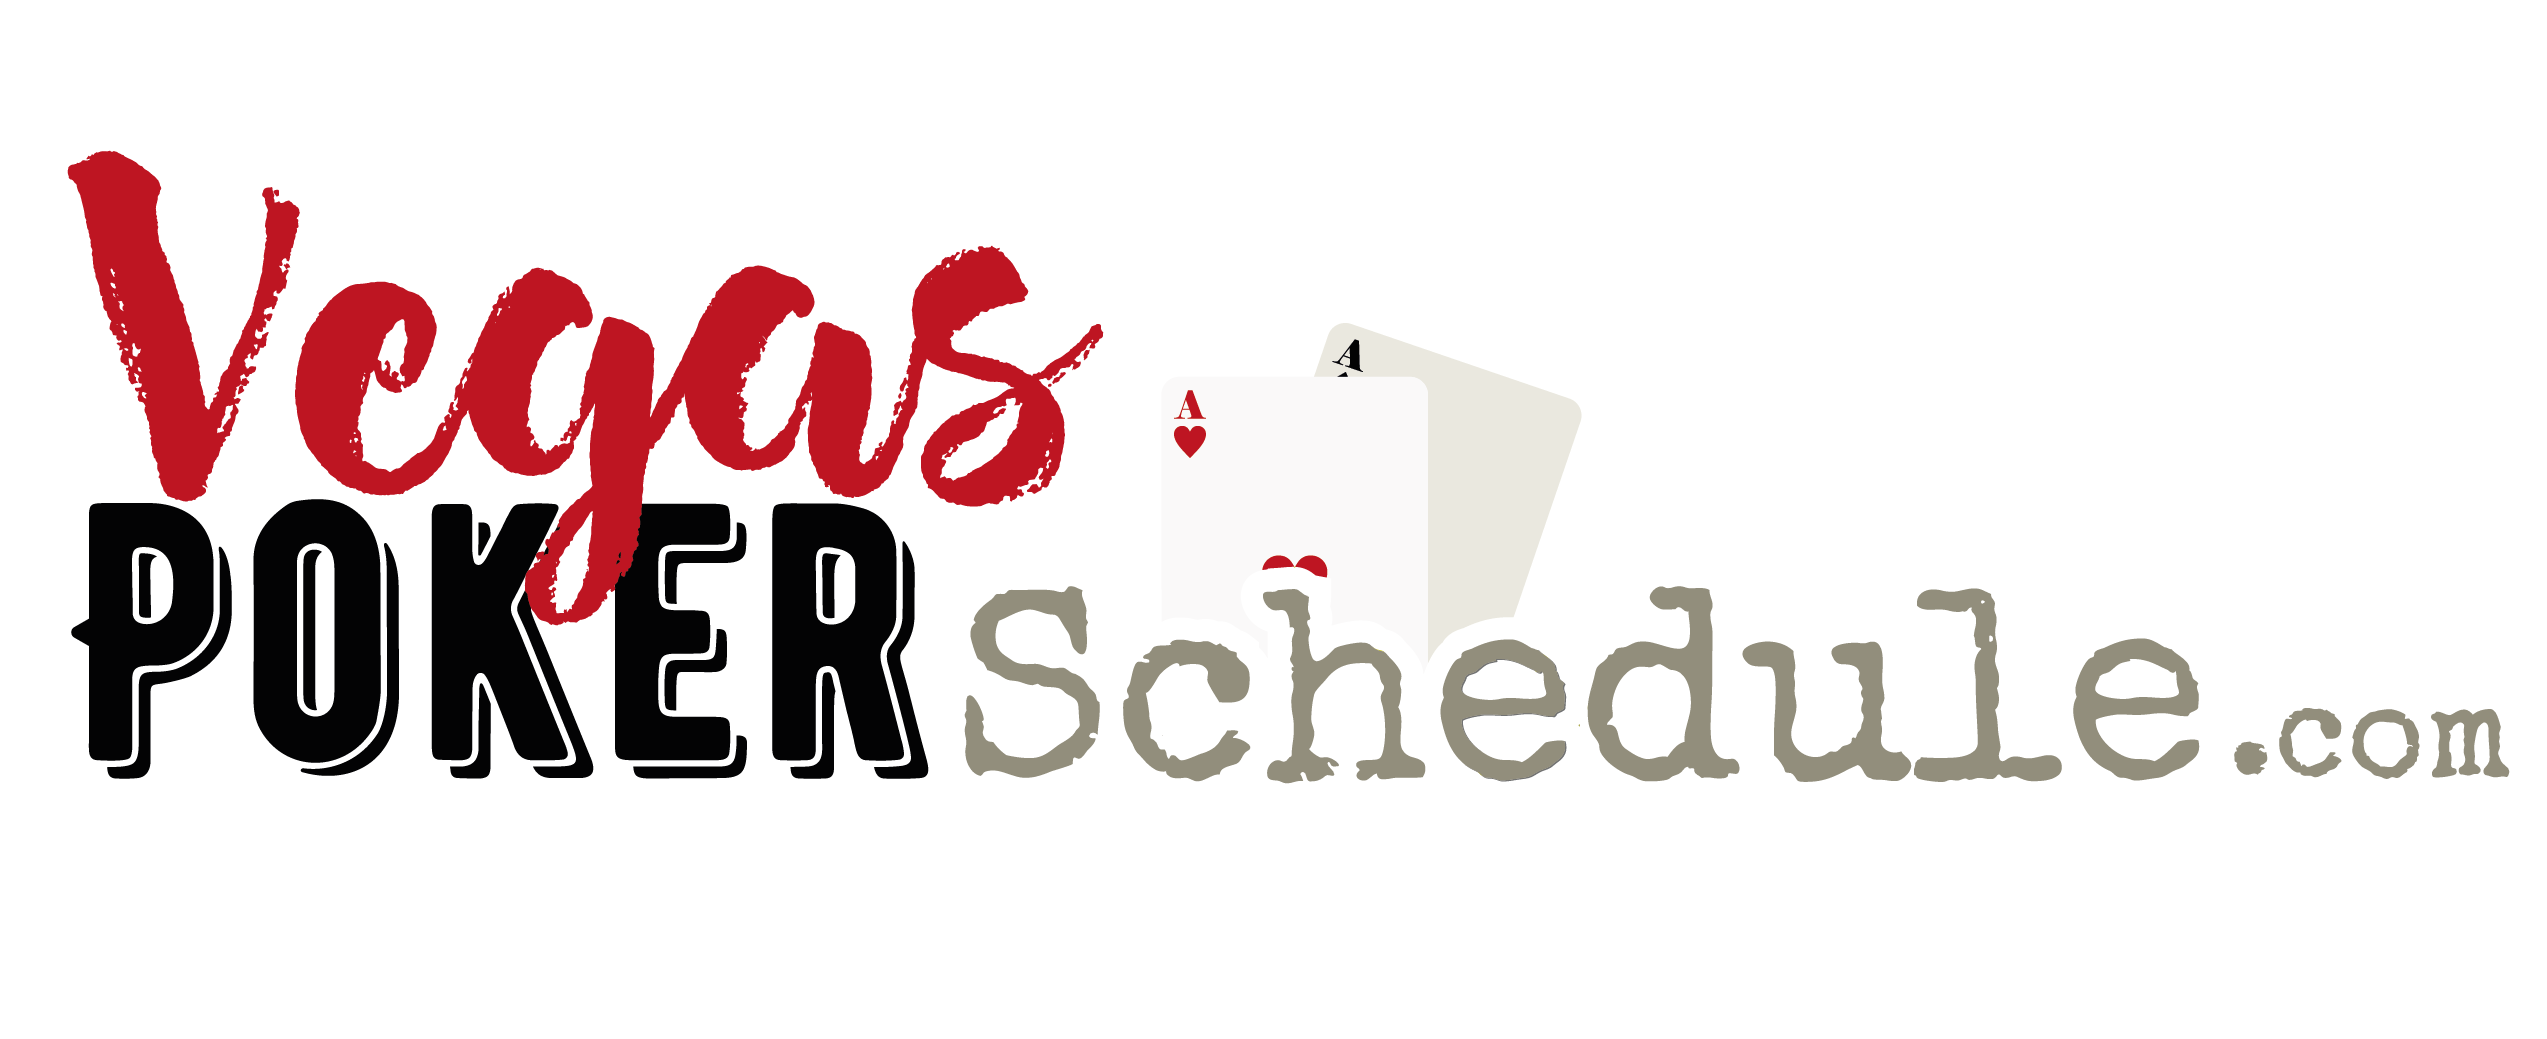 Vegas Poker Schedule